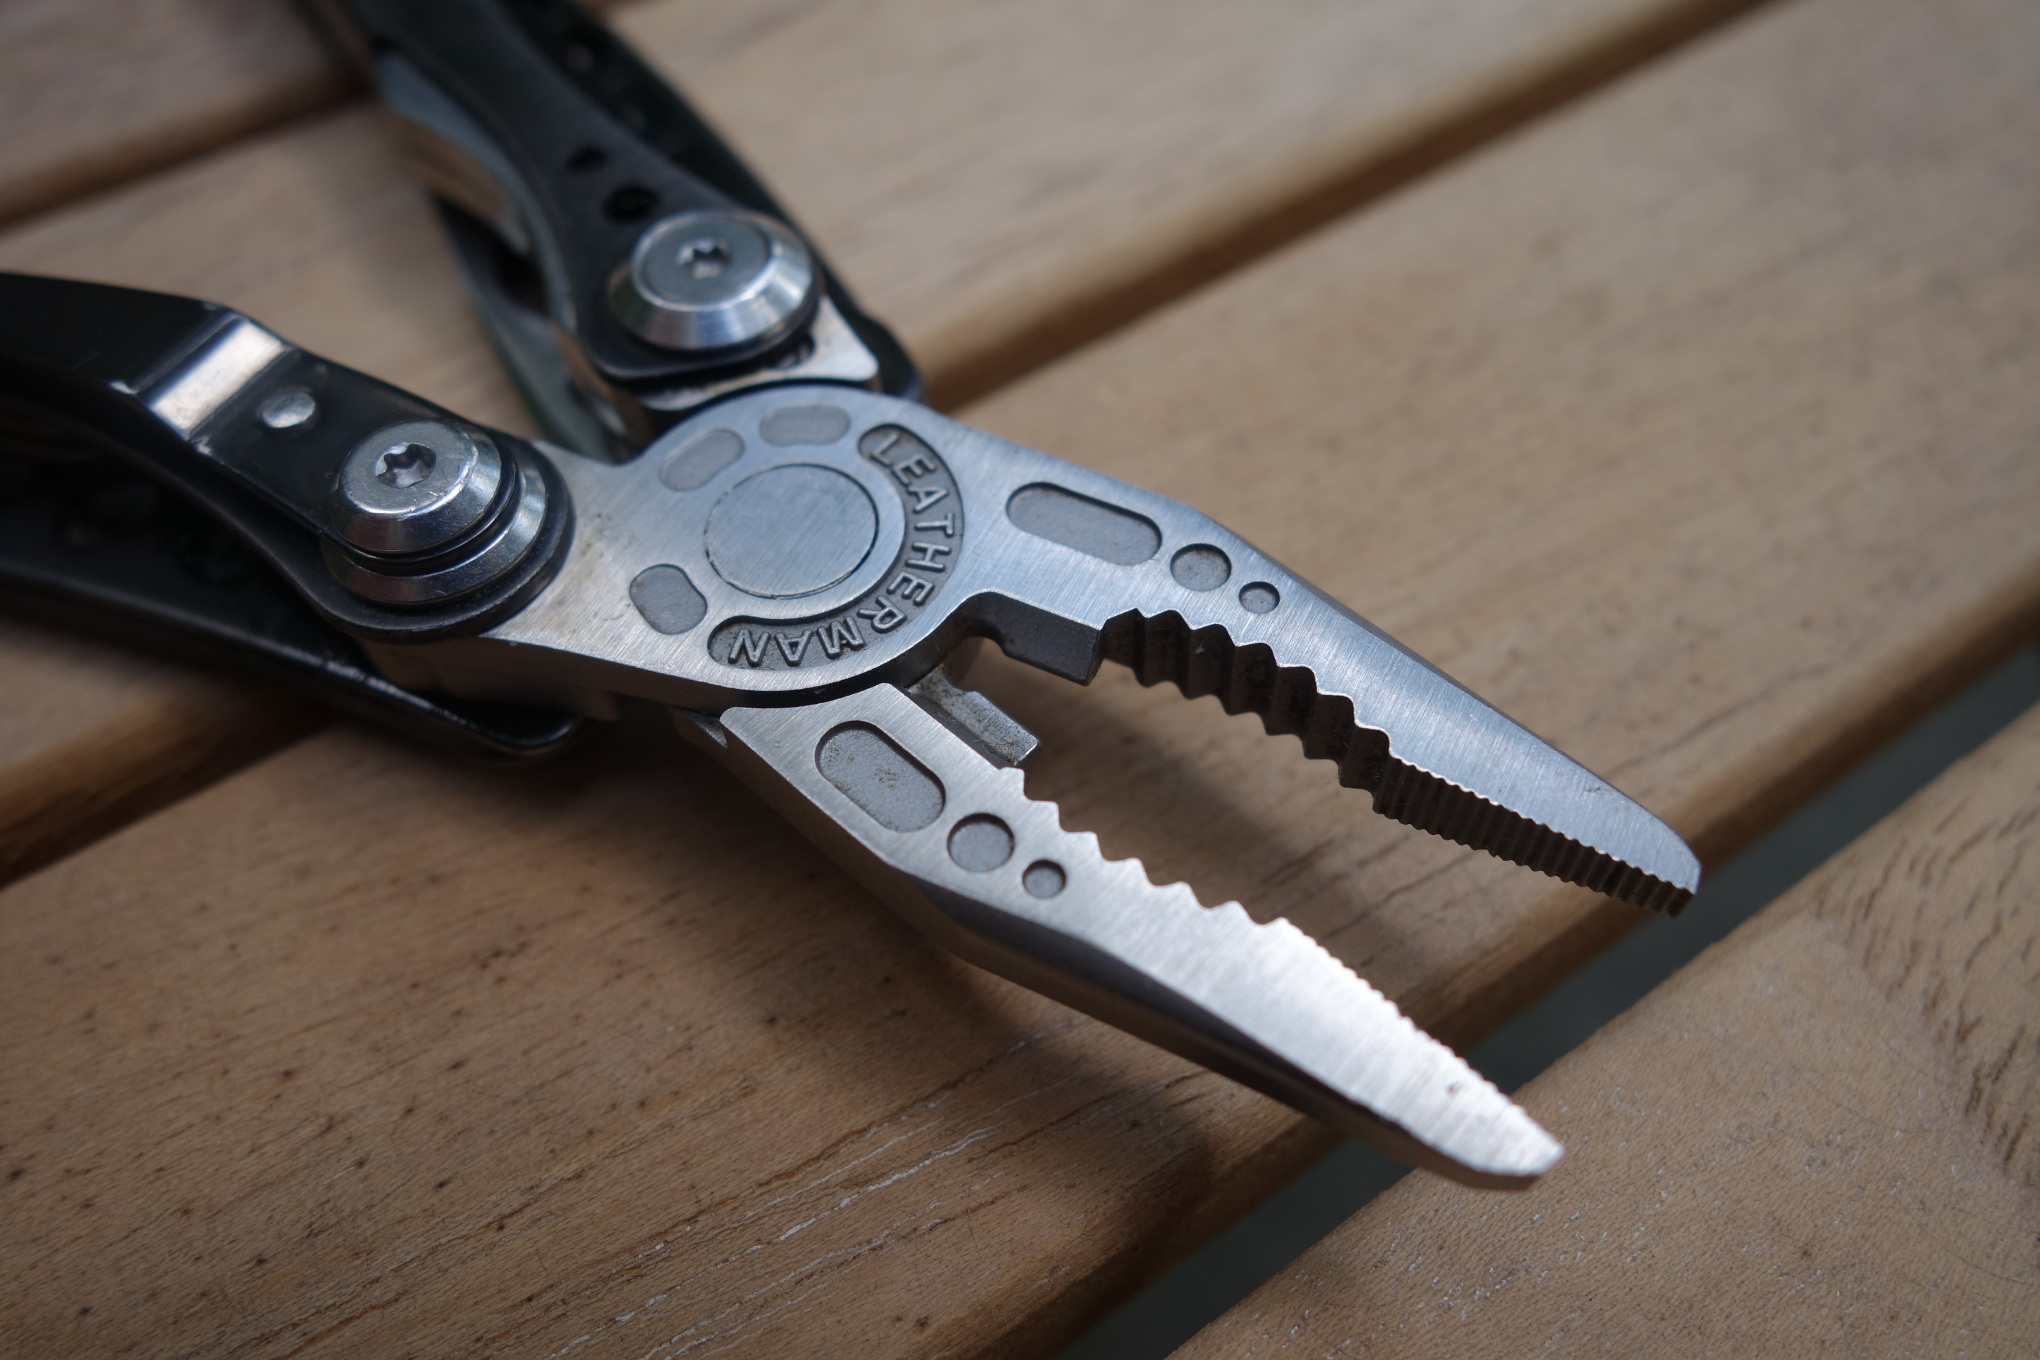 Needlenose Pliers